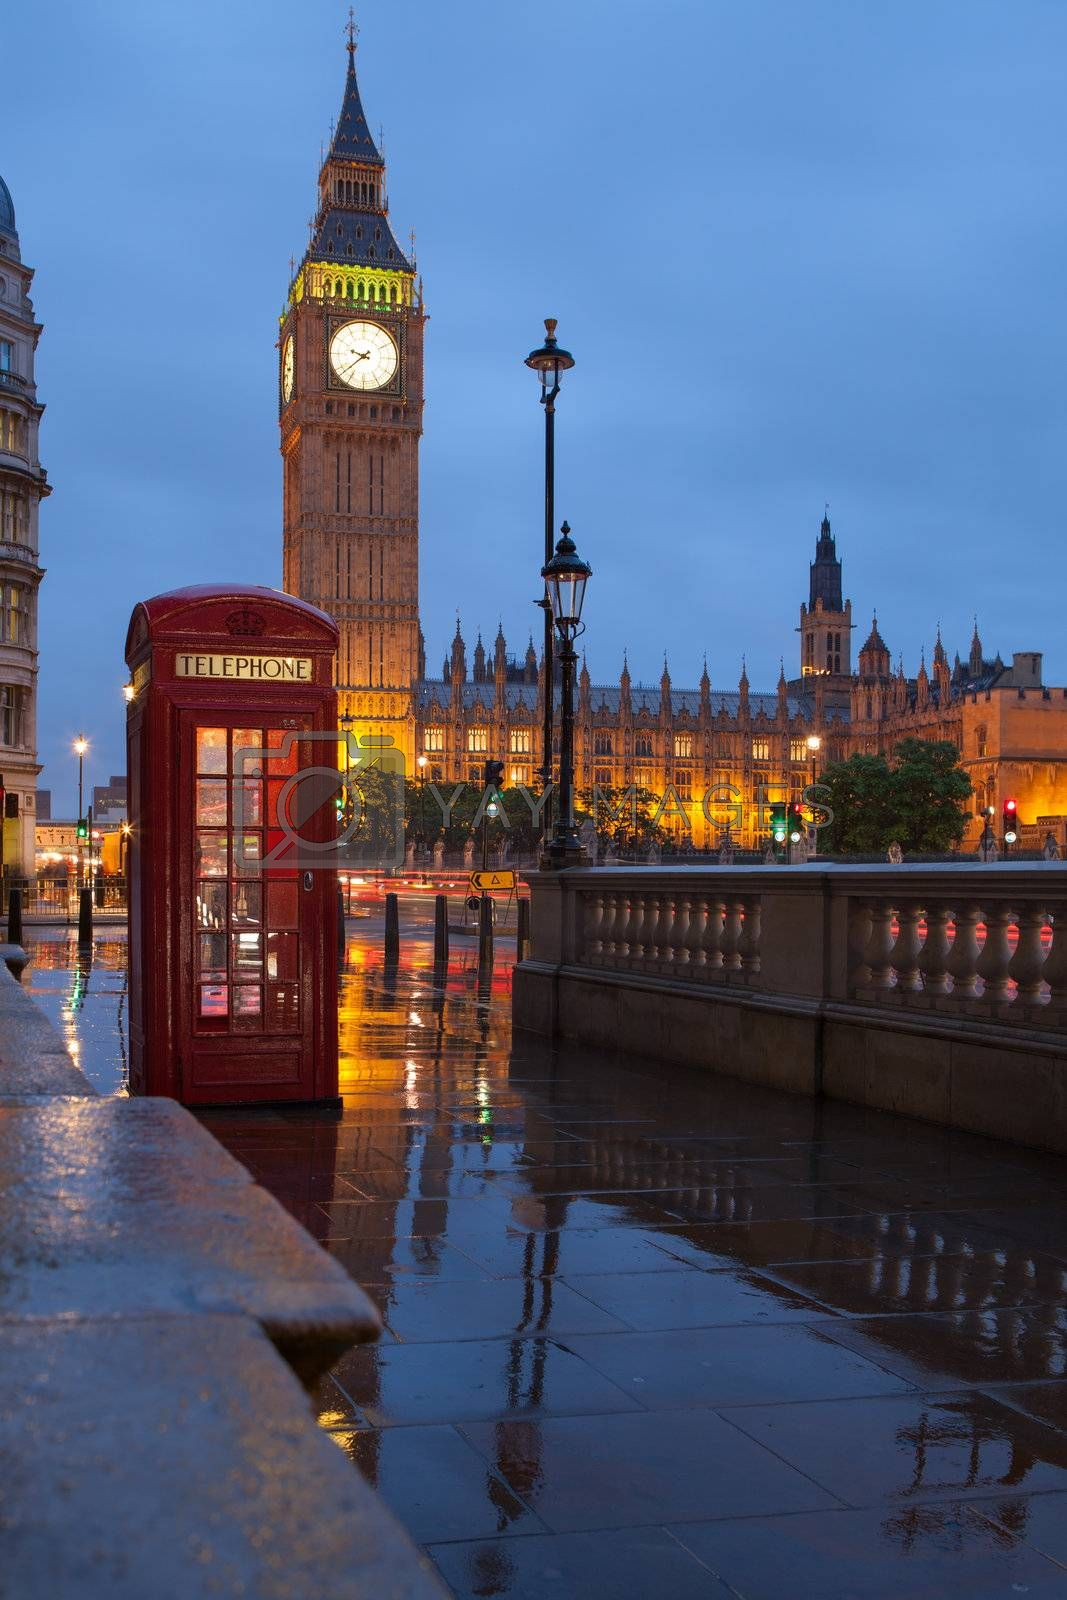 Red public telephone box and illuminated clock on Big Ben tower of Westminster Palace in twilight with reflection on wet footway, Great Britain